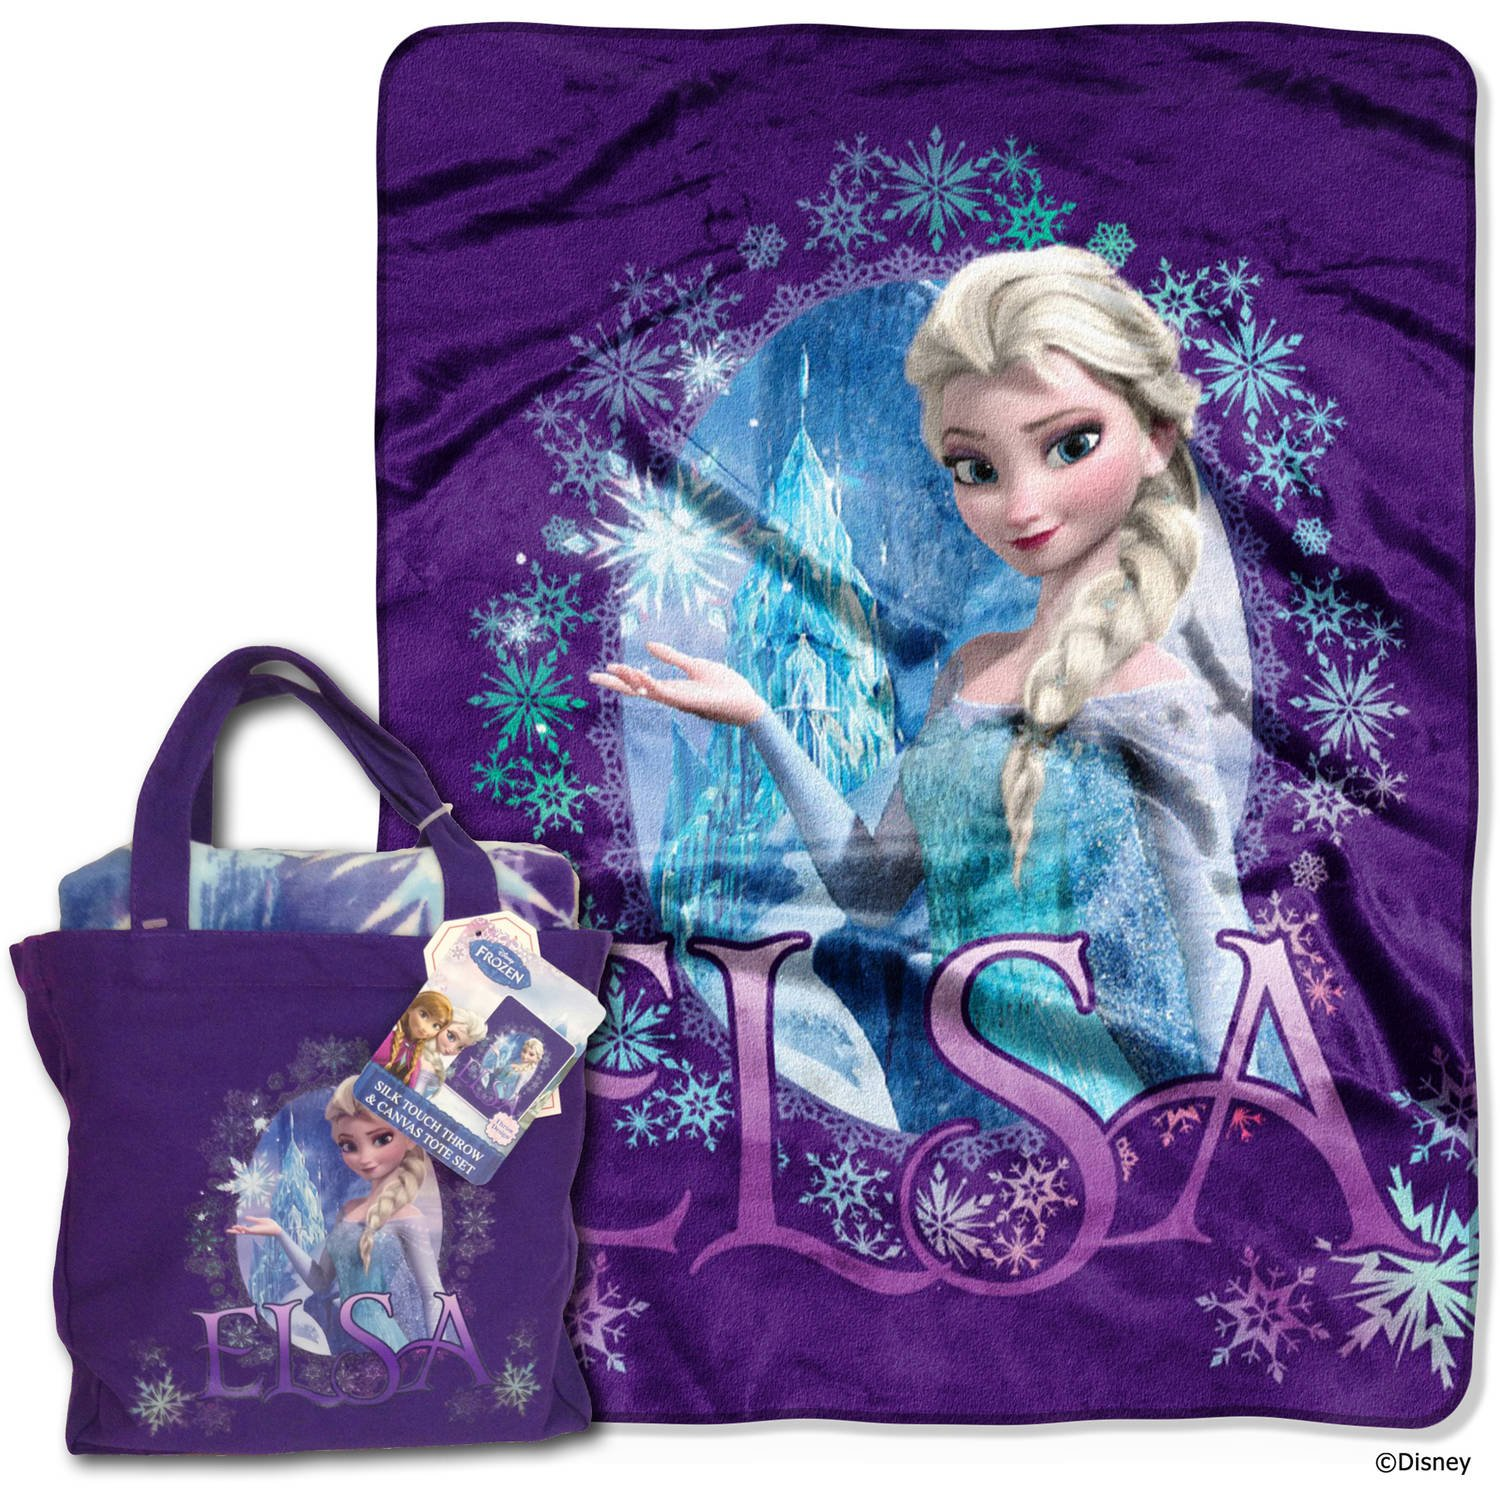 N2 40 x 50inch Kids Blue Purple Disney Frozen Queen Elsa Throw Blanket + Tote Bag, Cute Bedding Girls Movie Character Warm Soft, Polyester Cotton